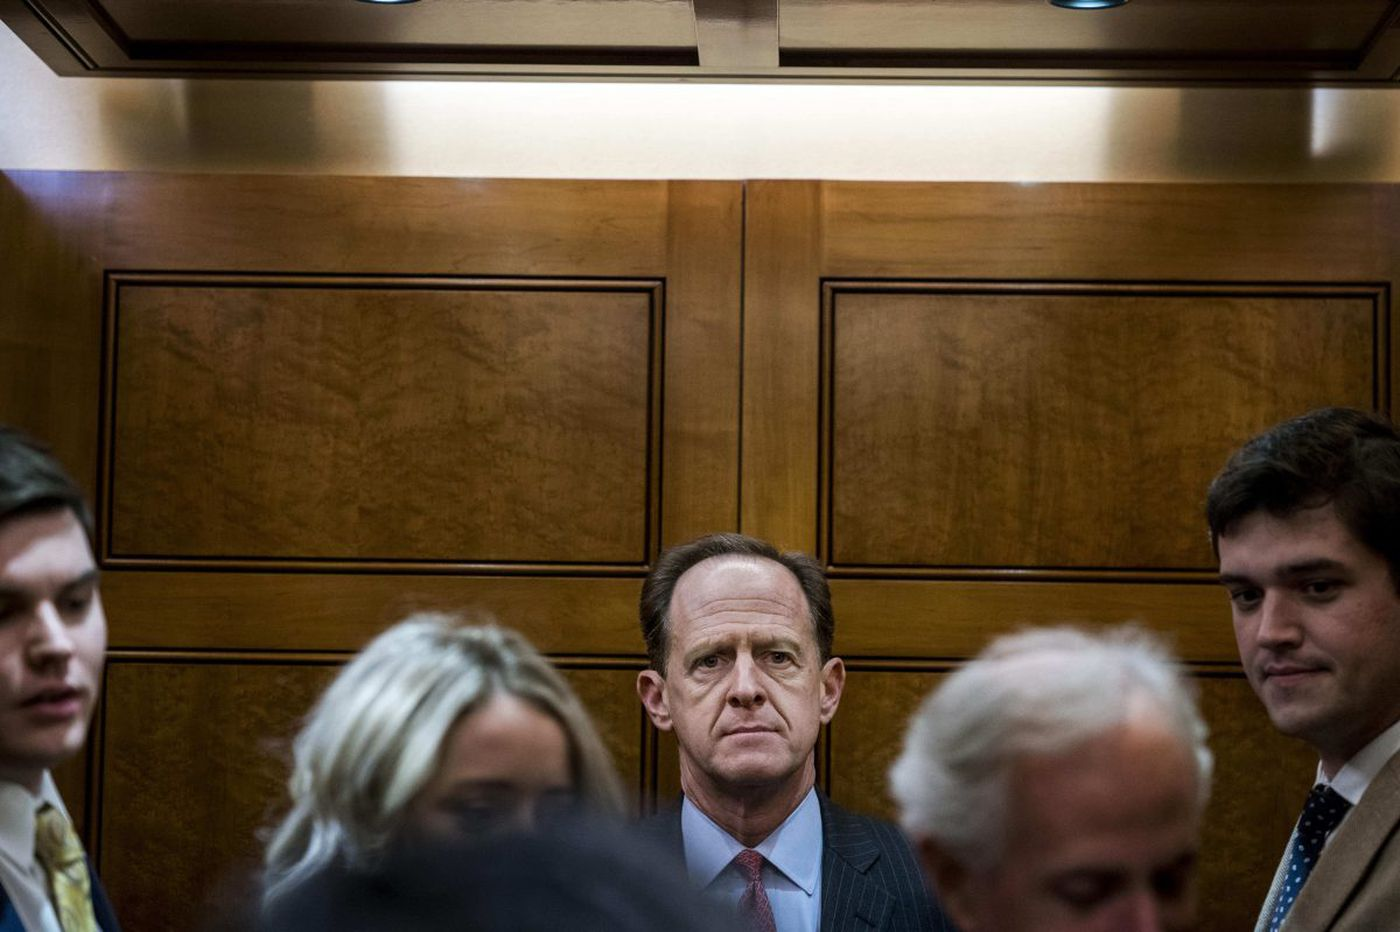 Analysis: Sen. Pat Toomey turned the Republican tax bill away from populism